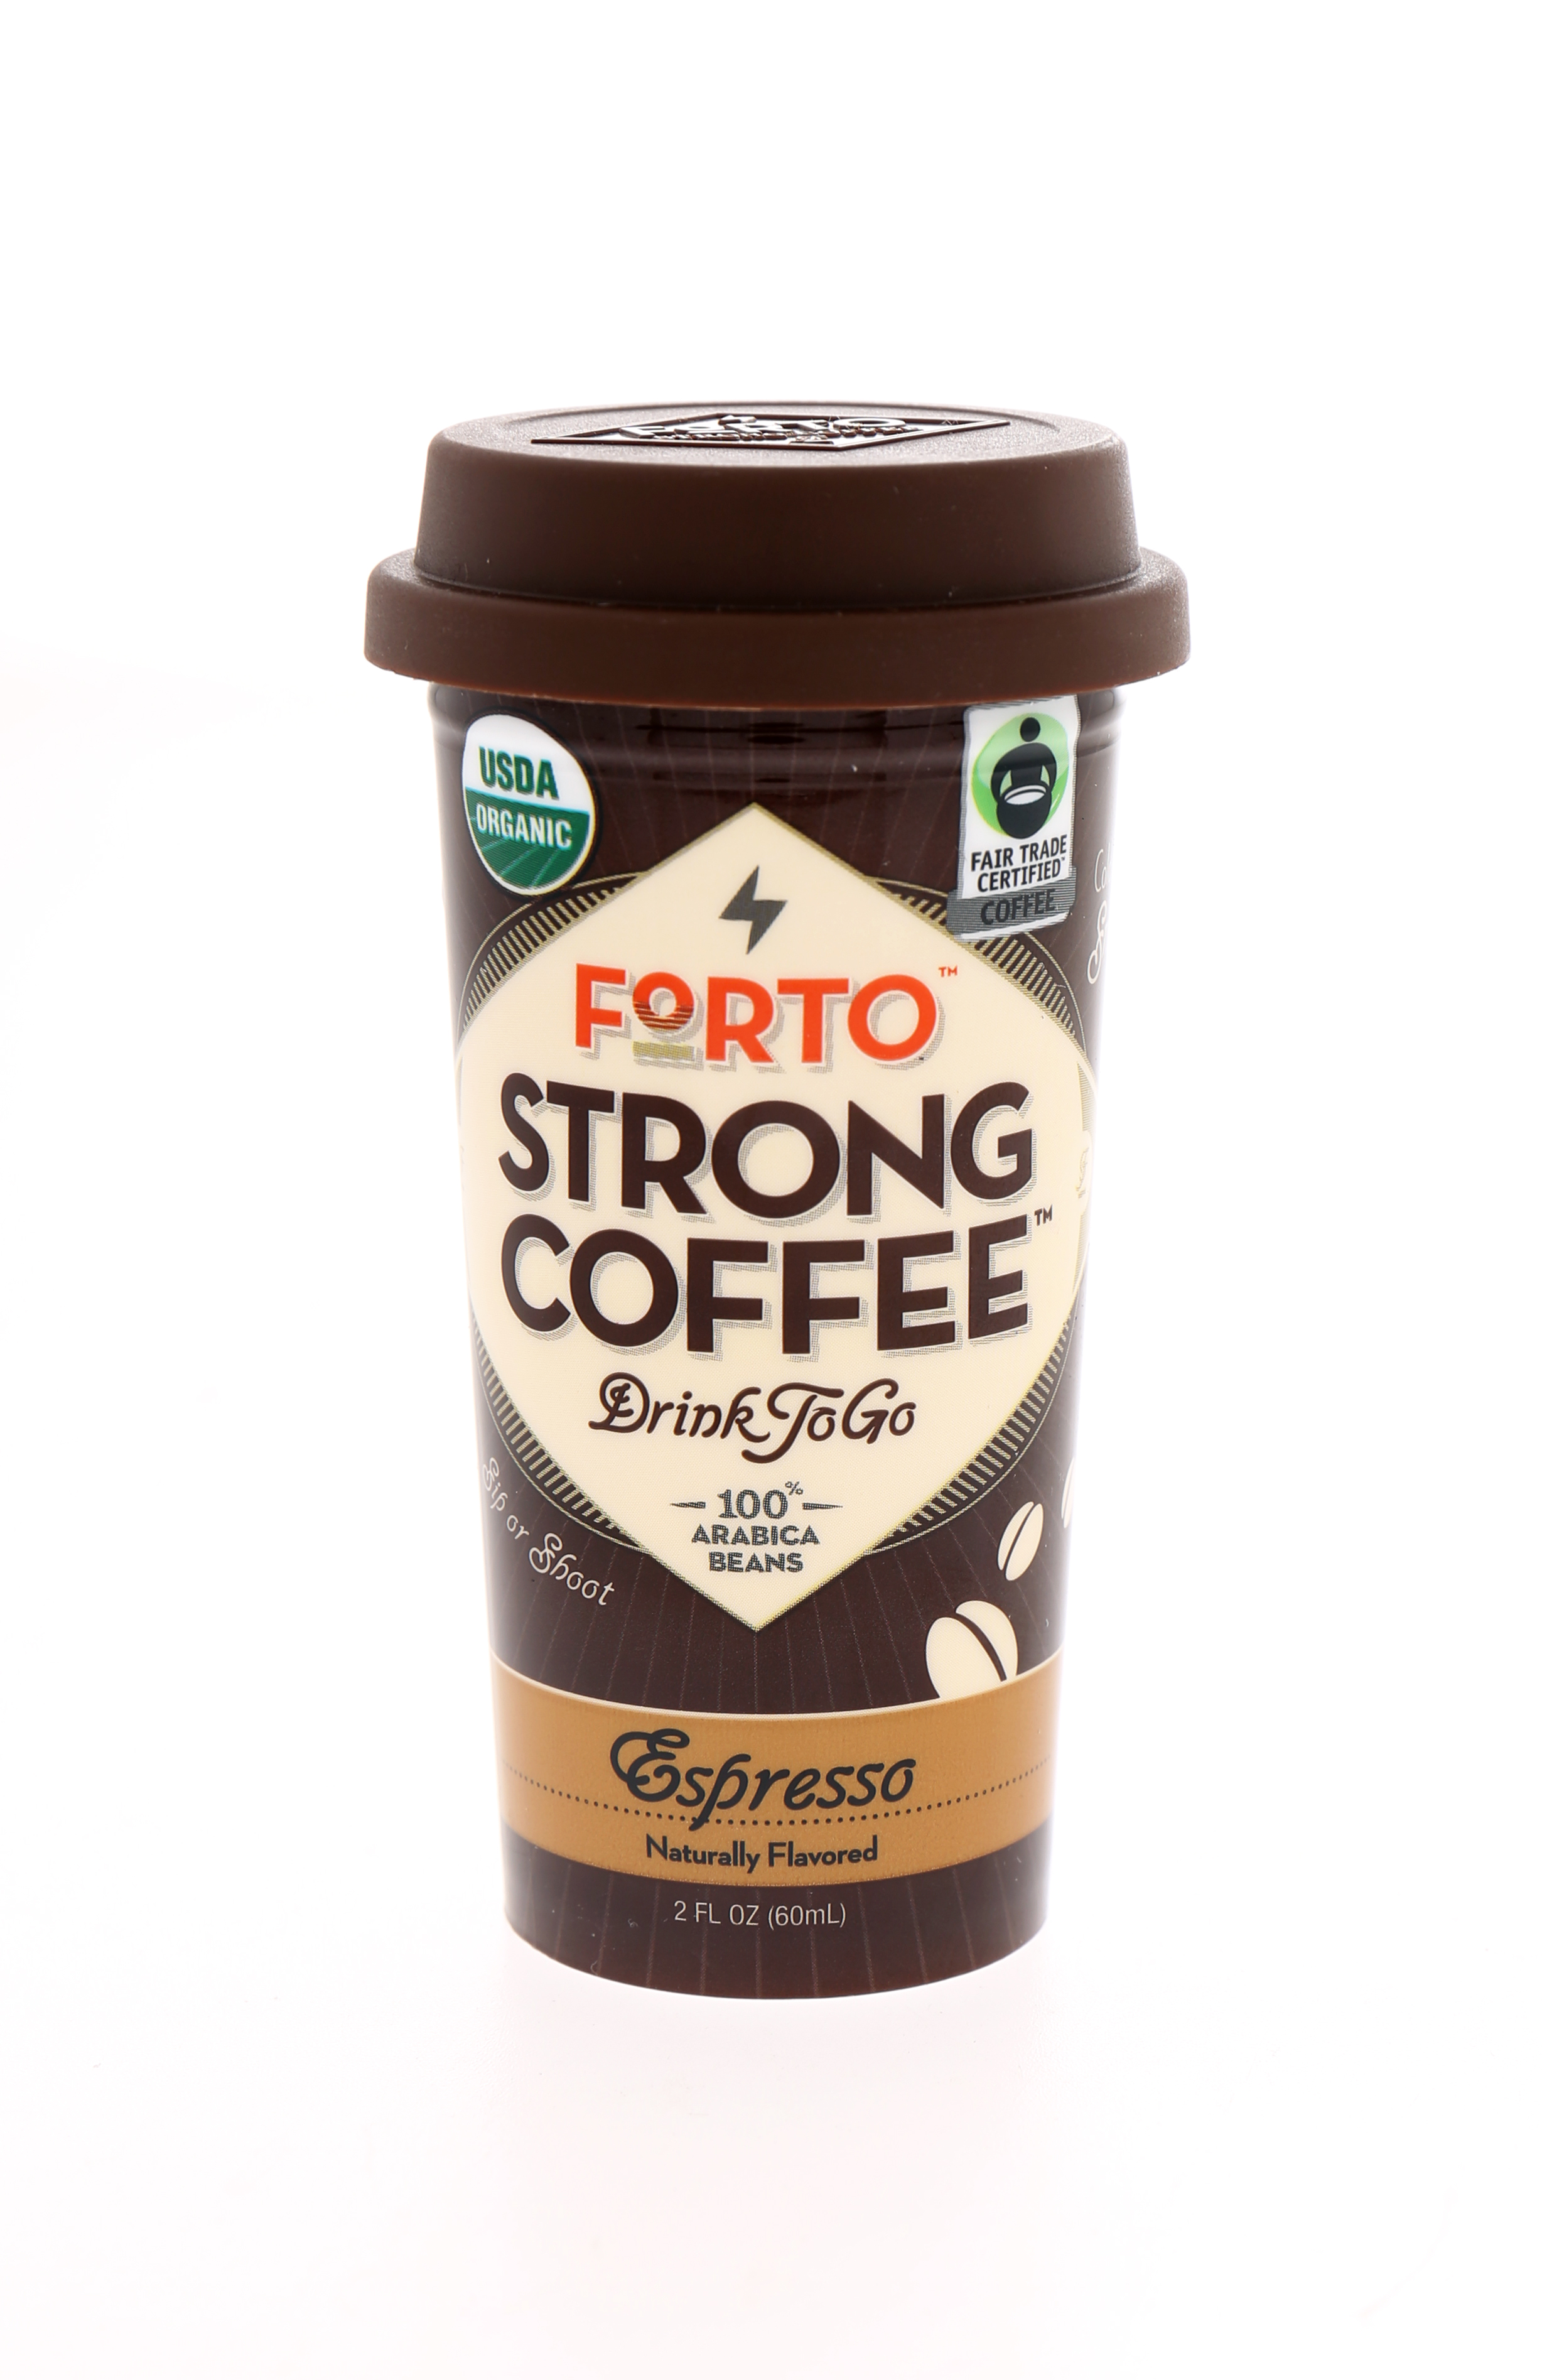 Forto Strong Coffee: Forto Espresso Front